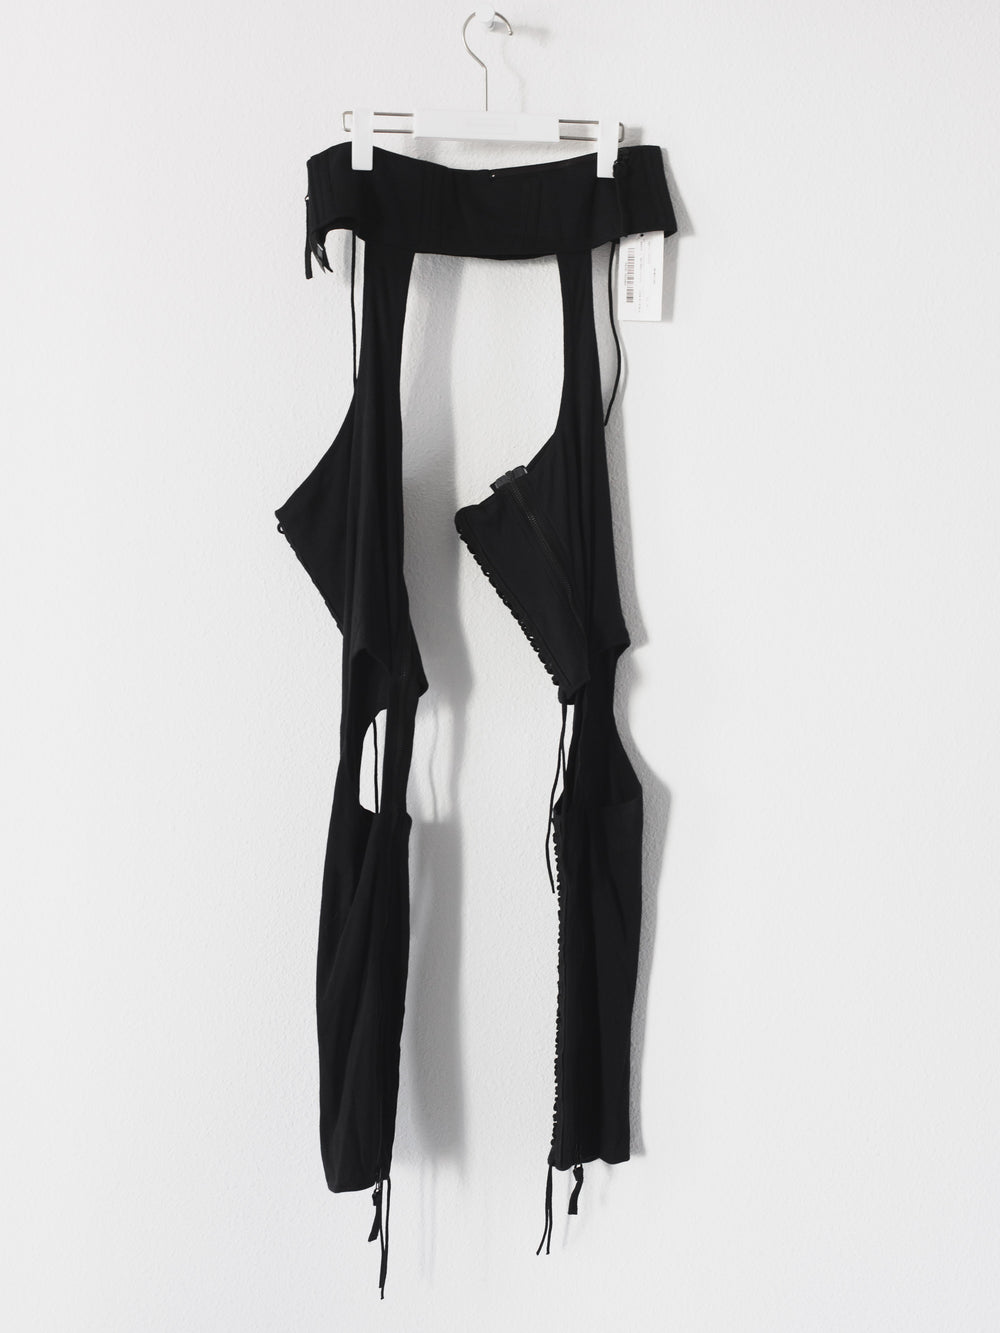 Helmut Lang AW03 Aviator Chaps